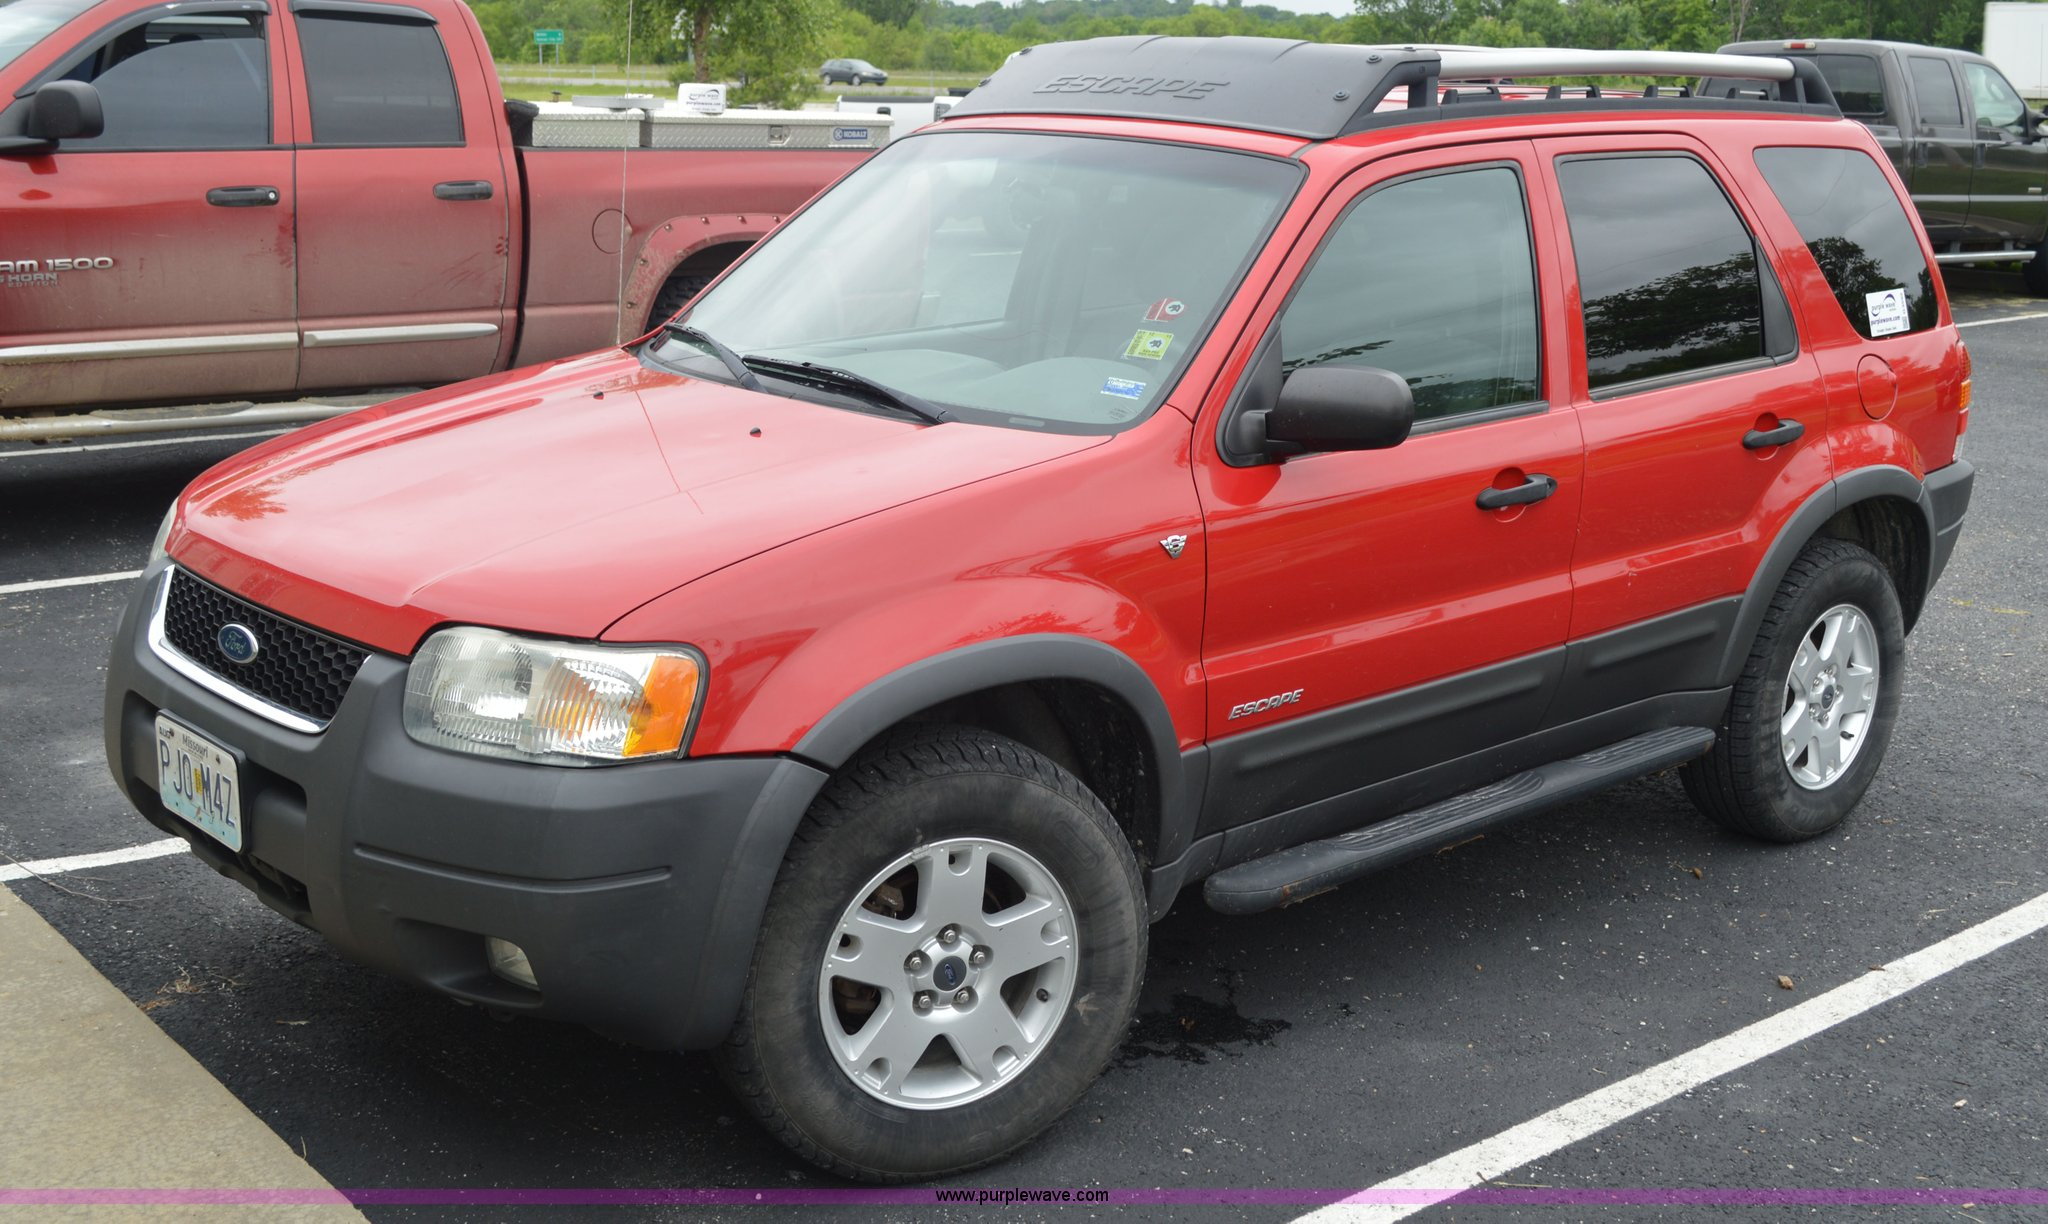 G3592 image for item g3592 2002 ford escape